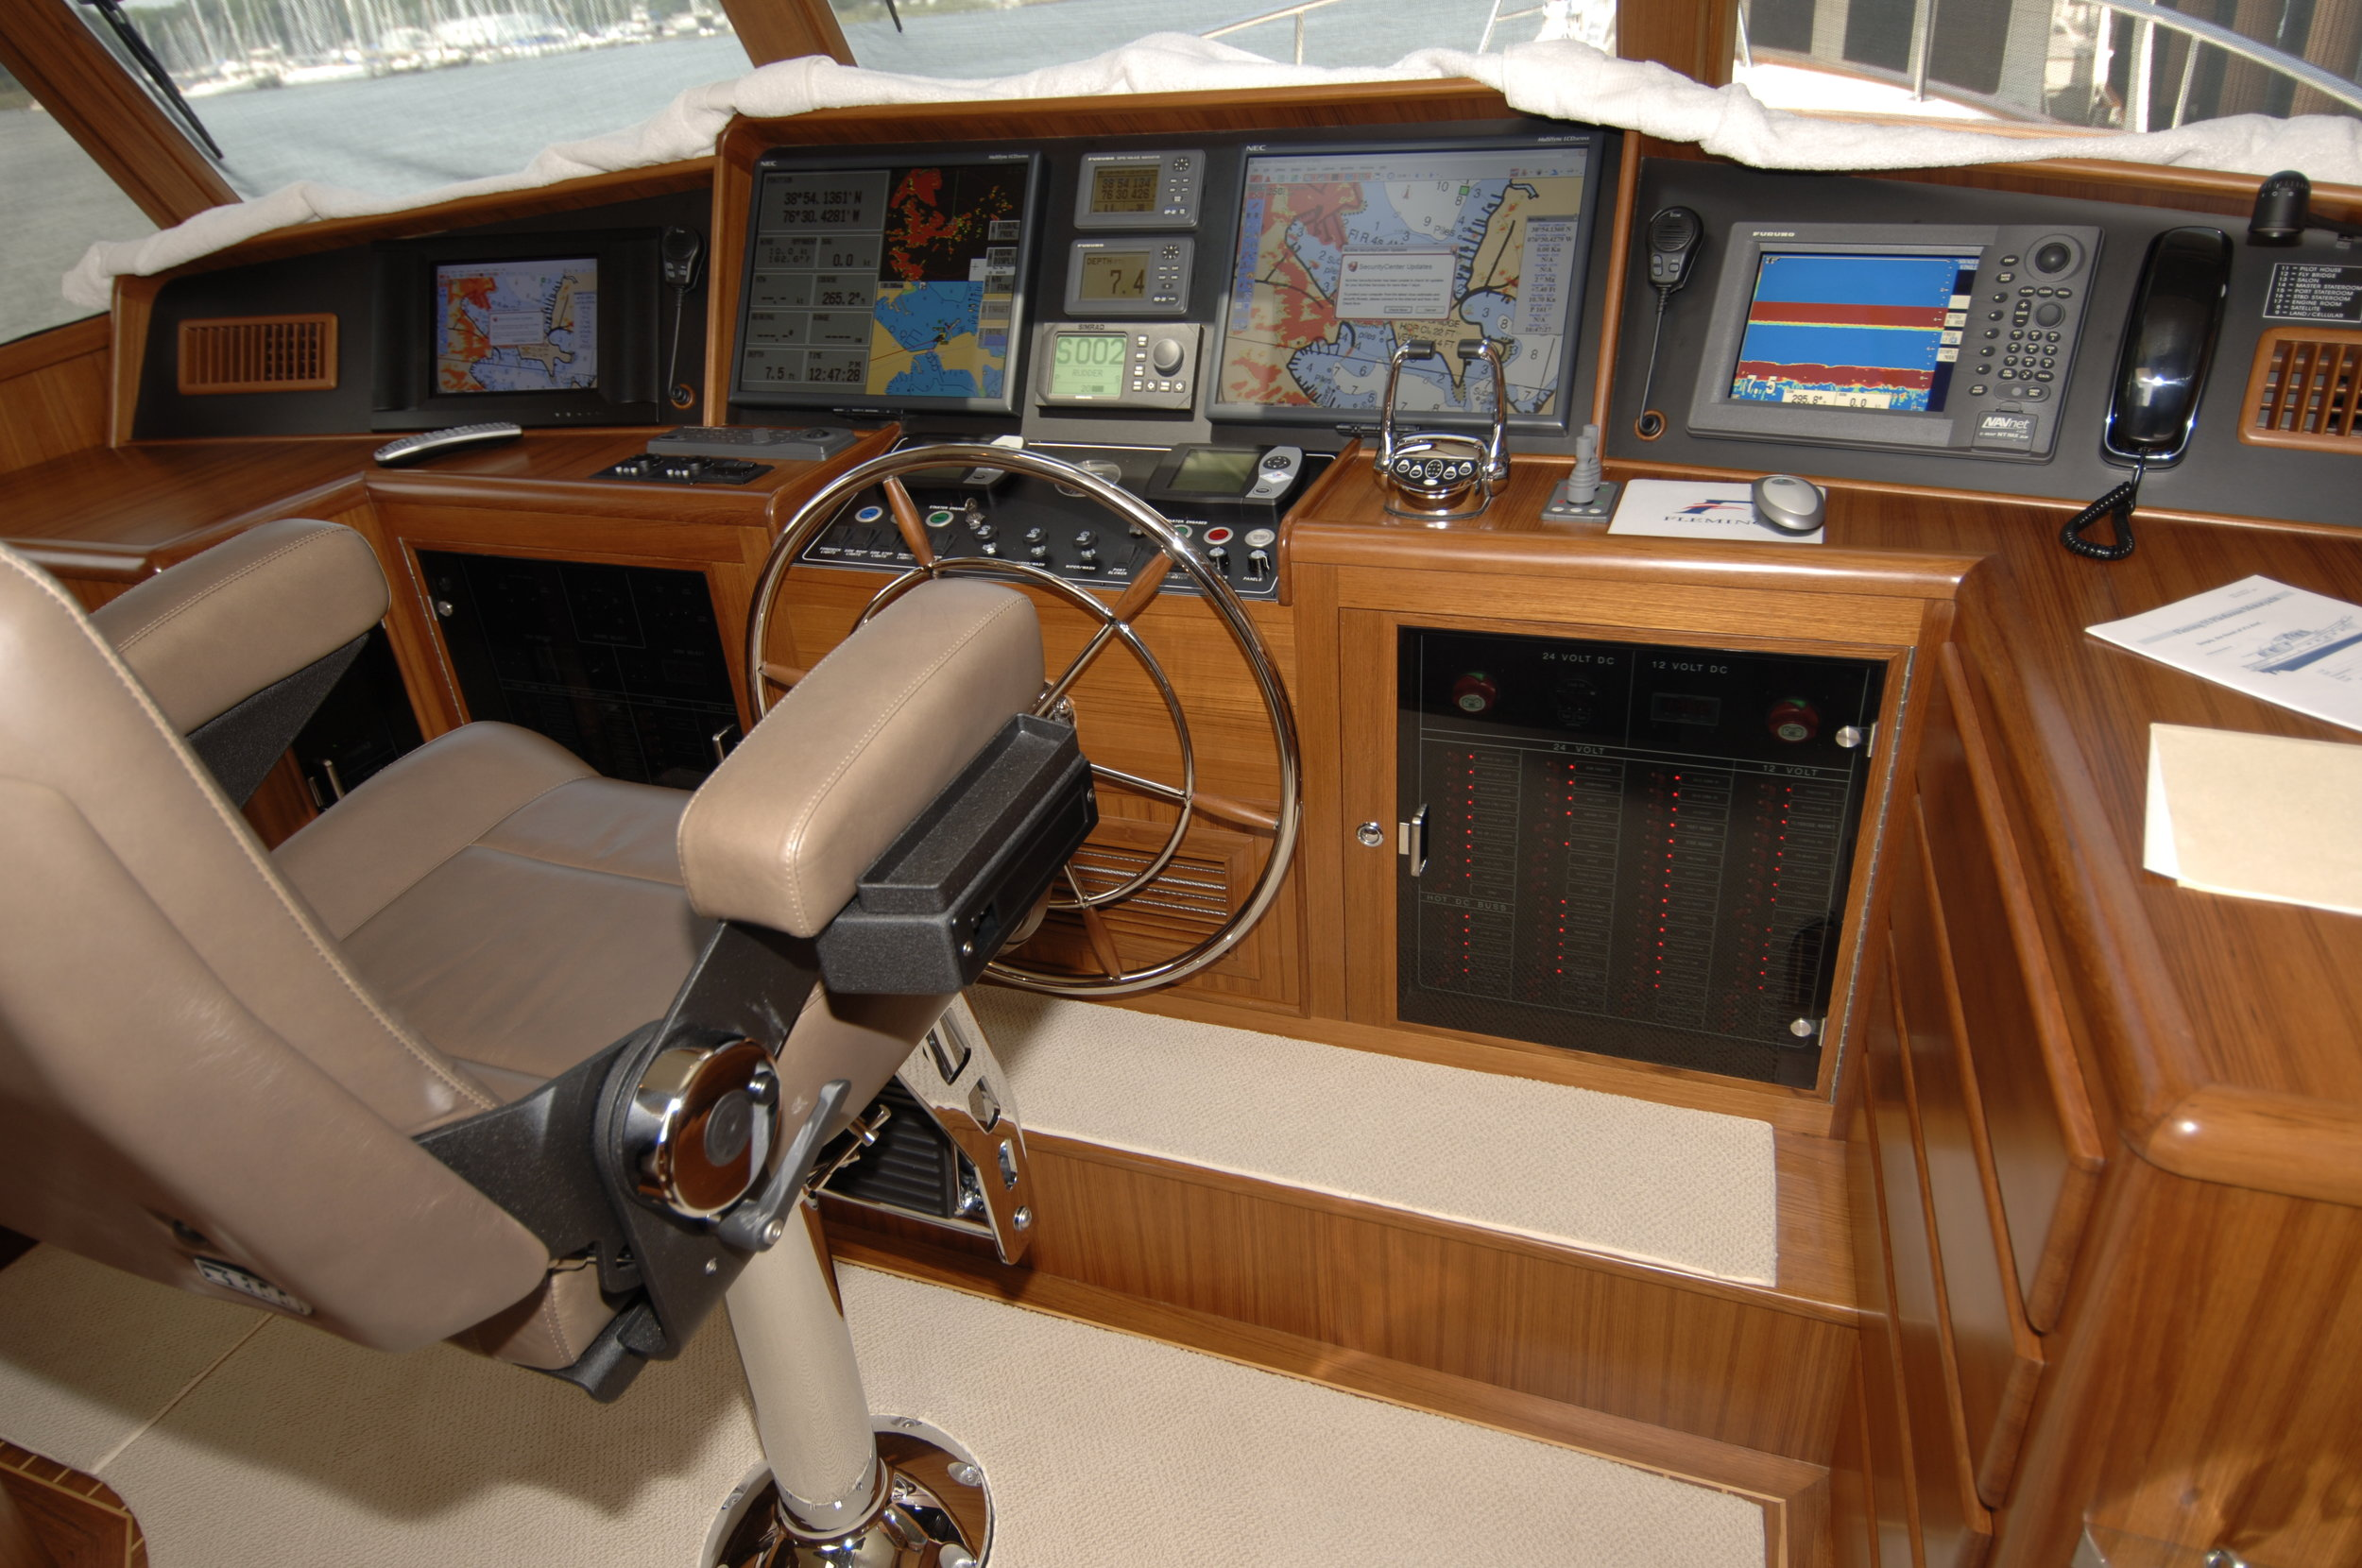 This beautiful Fleming 55 pilothouse has plenty of storage and drawers to designate where common items are to be stored. The captain must insist all crew follow this routine, so the helm is not a cluttered mess by the end of the cruise.